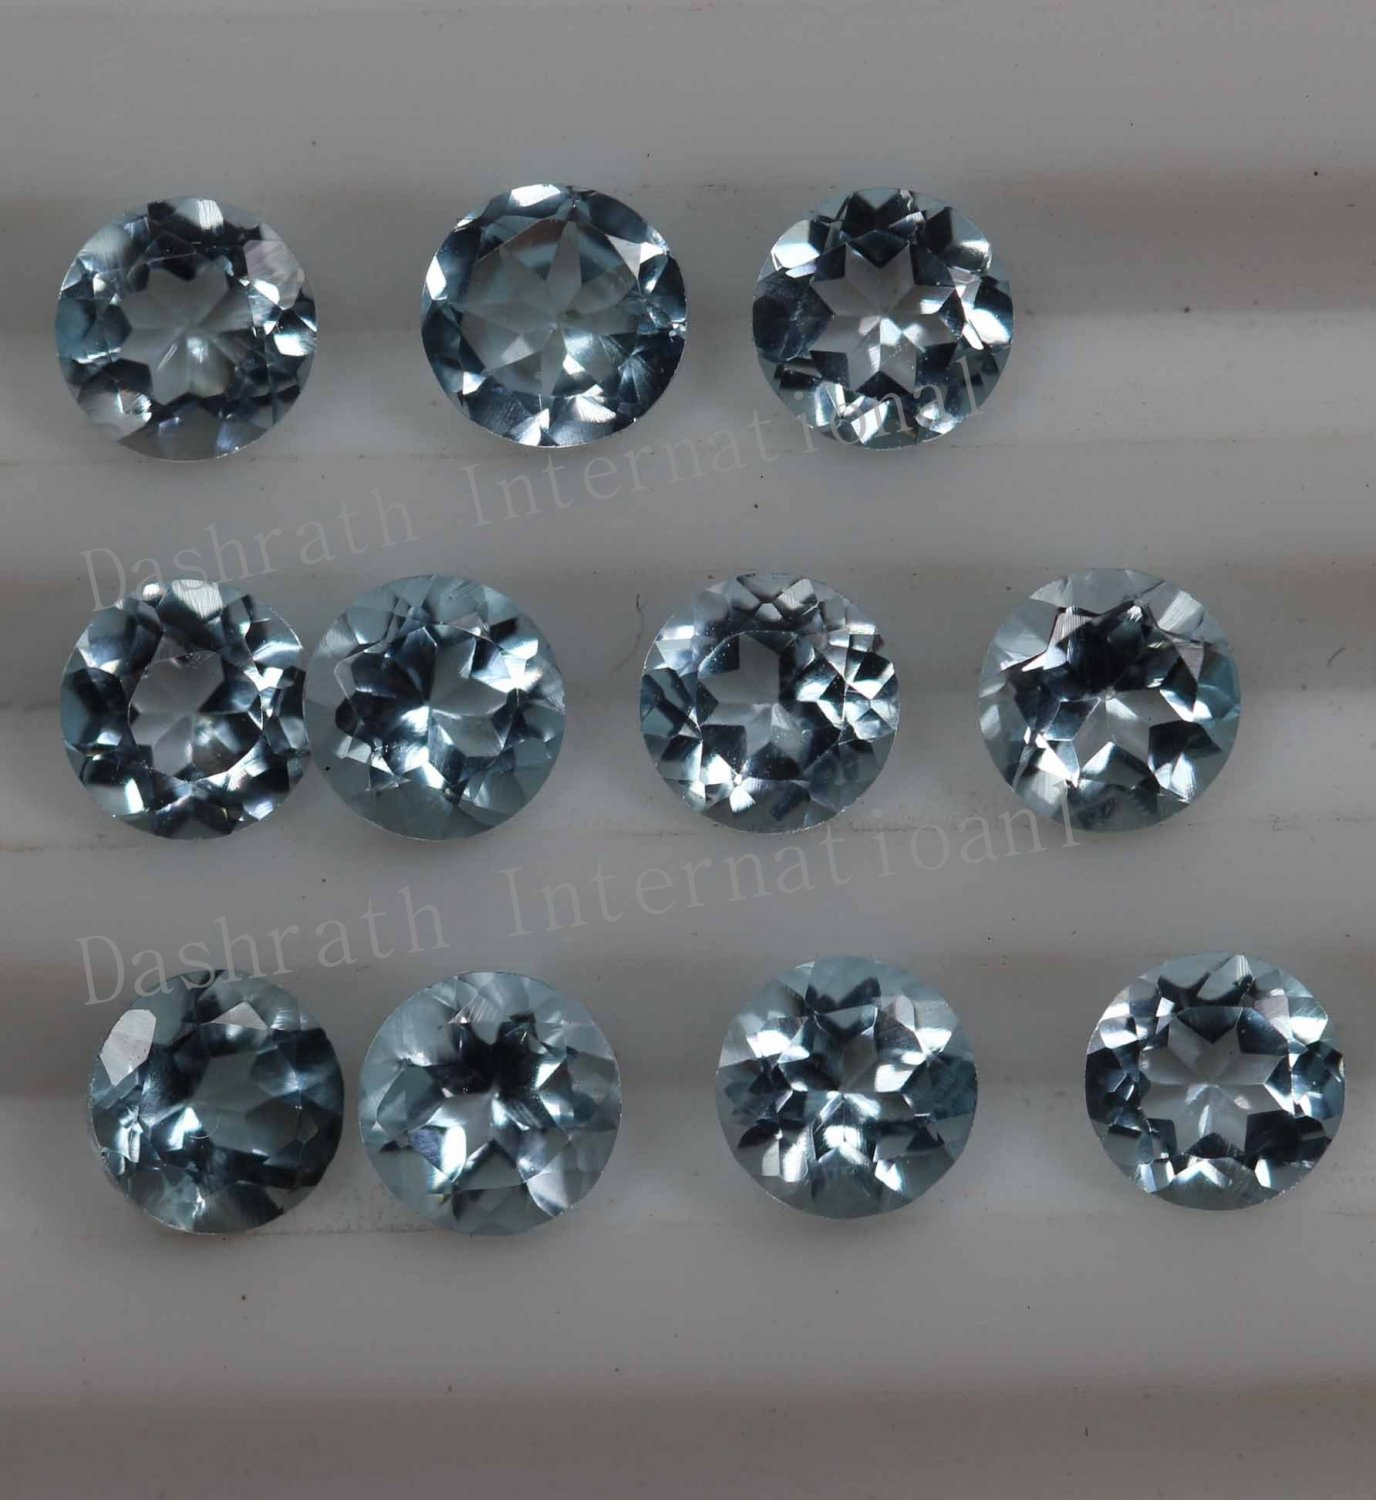 6mmNatural Sky Blue Topaz Faceted Cut Round 25 Pieces Lot Blue Color  Top Quality Loose Gemstone